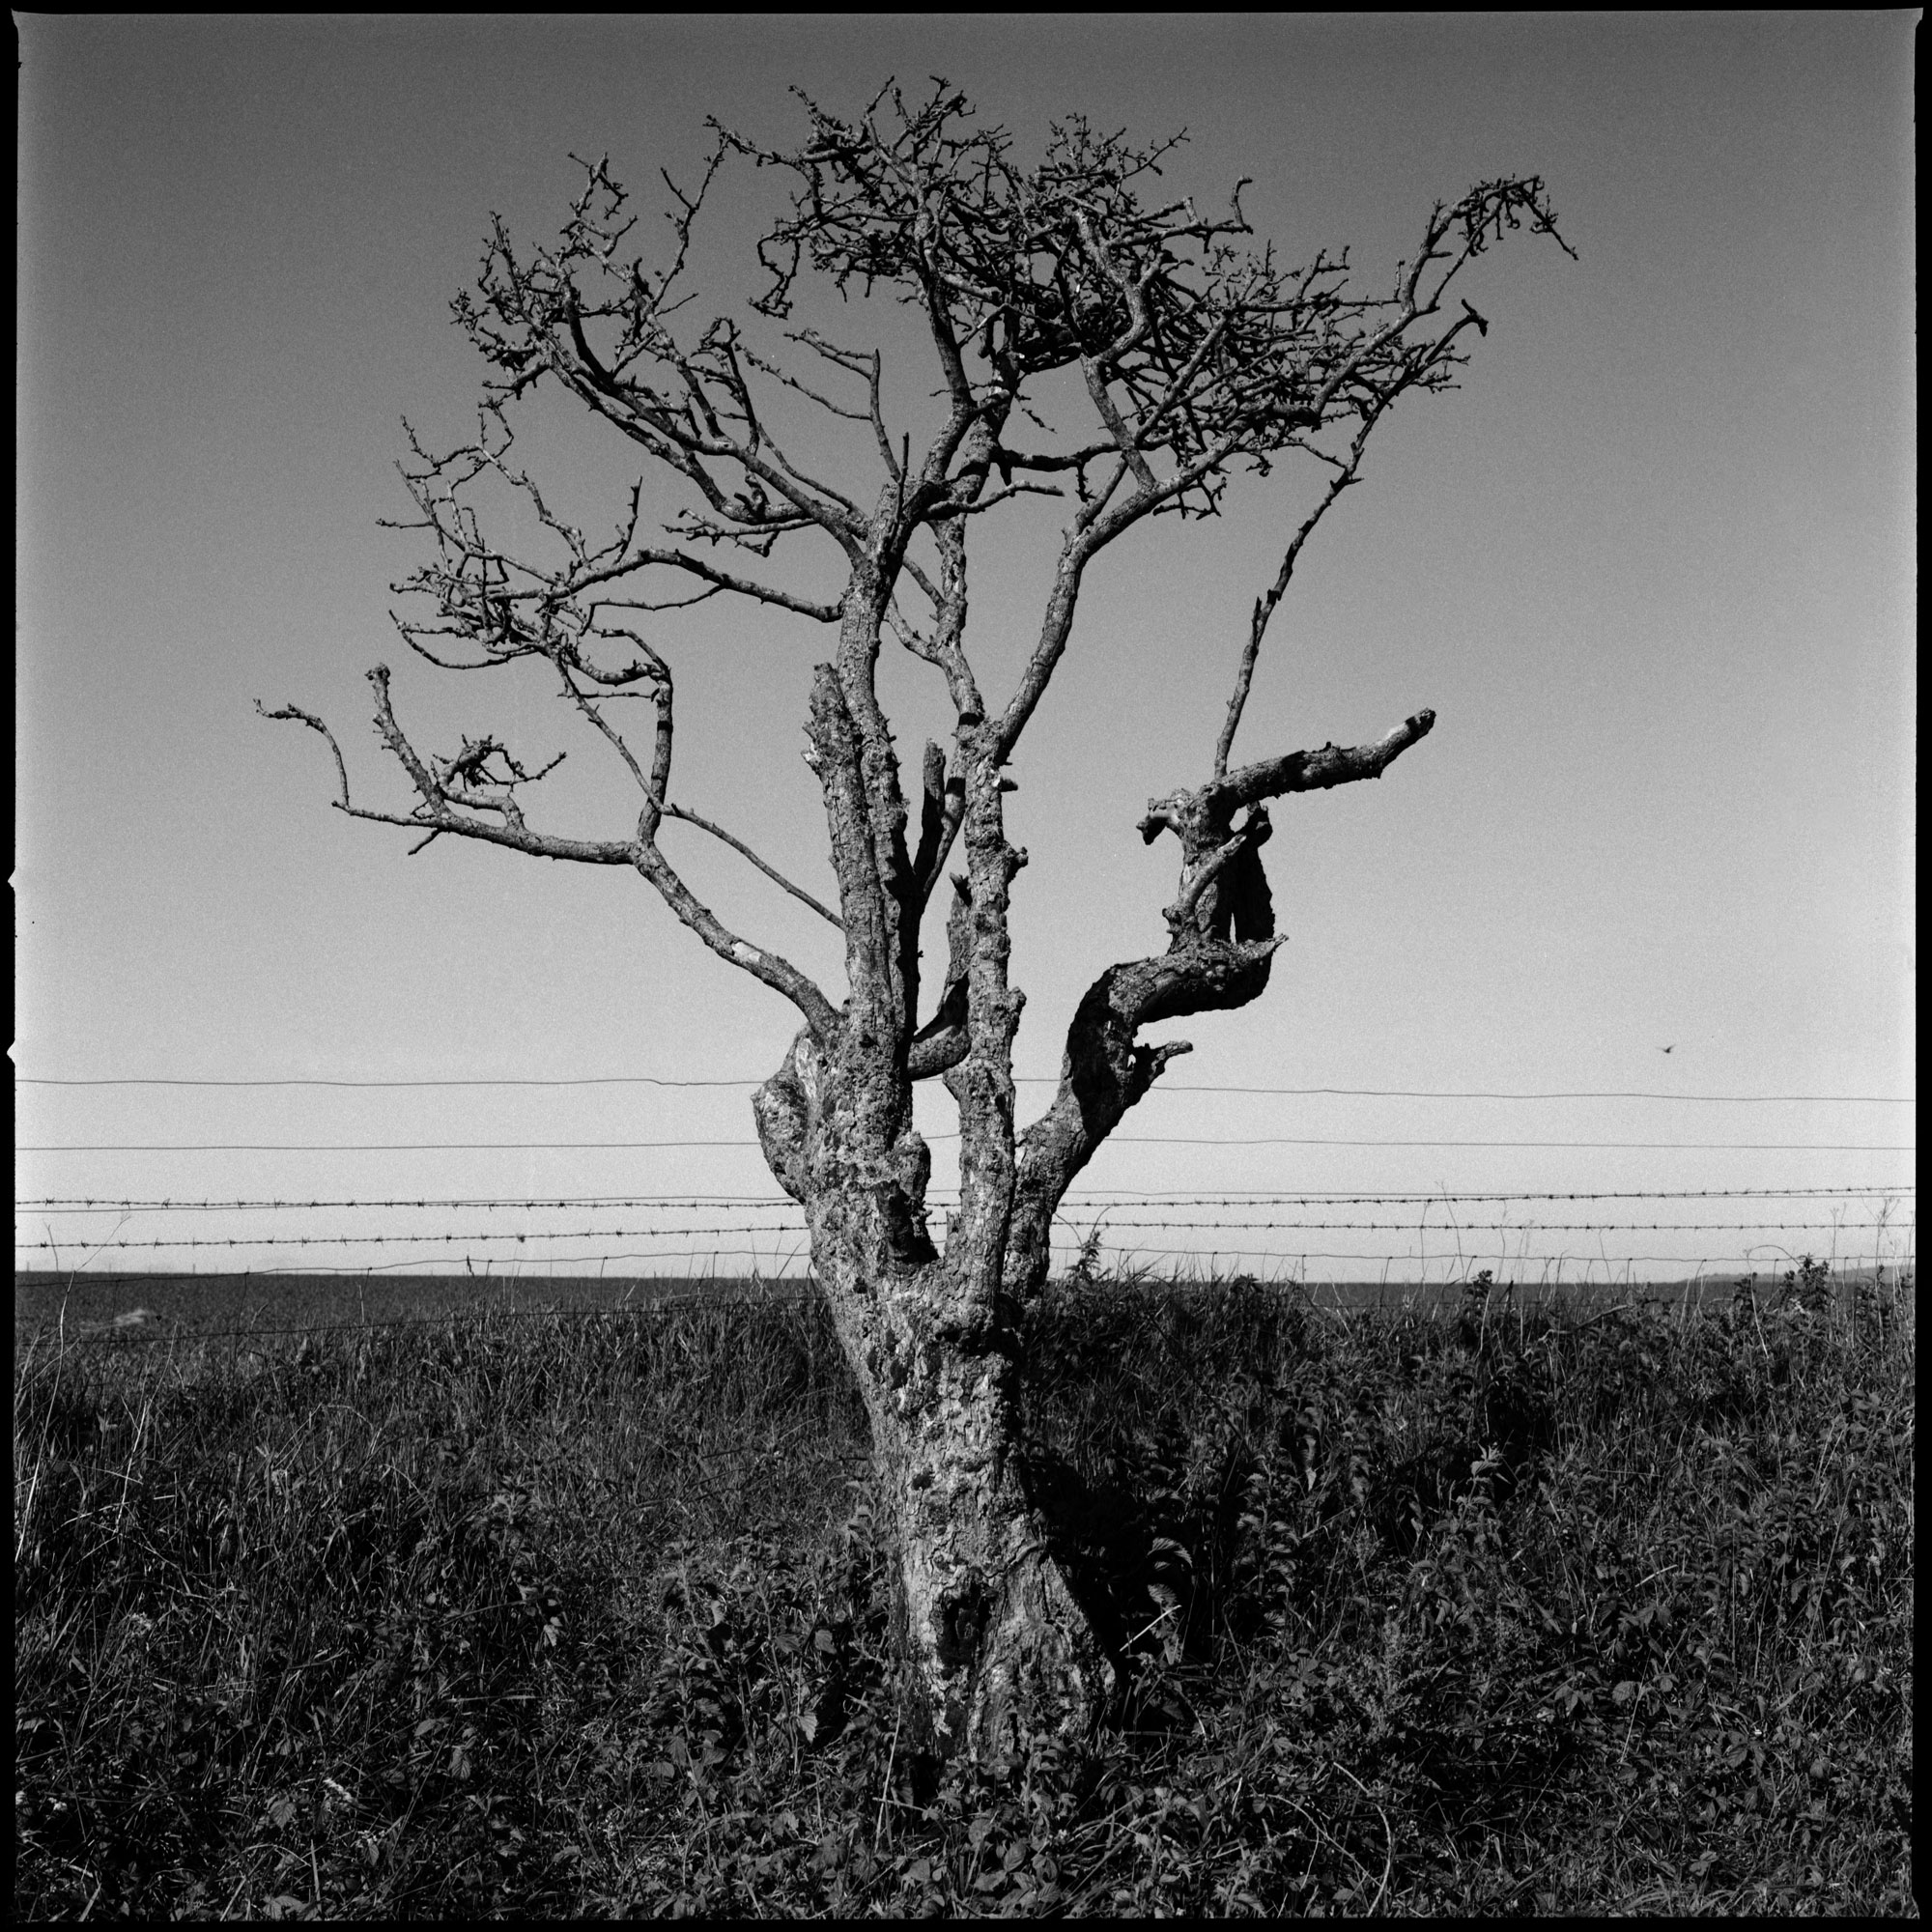 Lonely Tree, Observations Series, Photography By Ioannis Koussertari